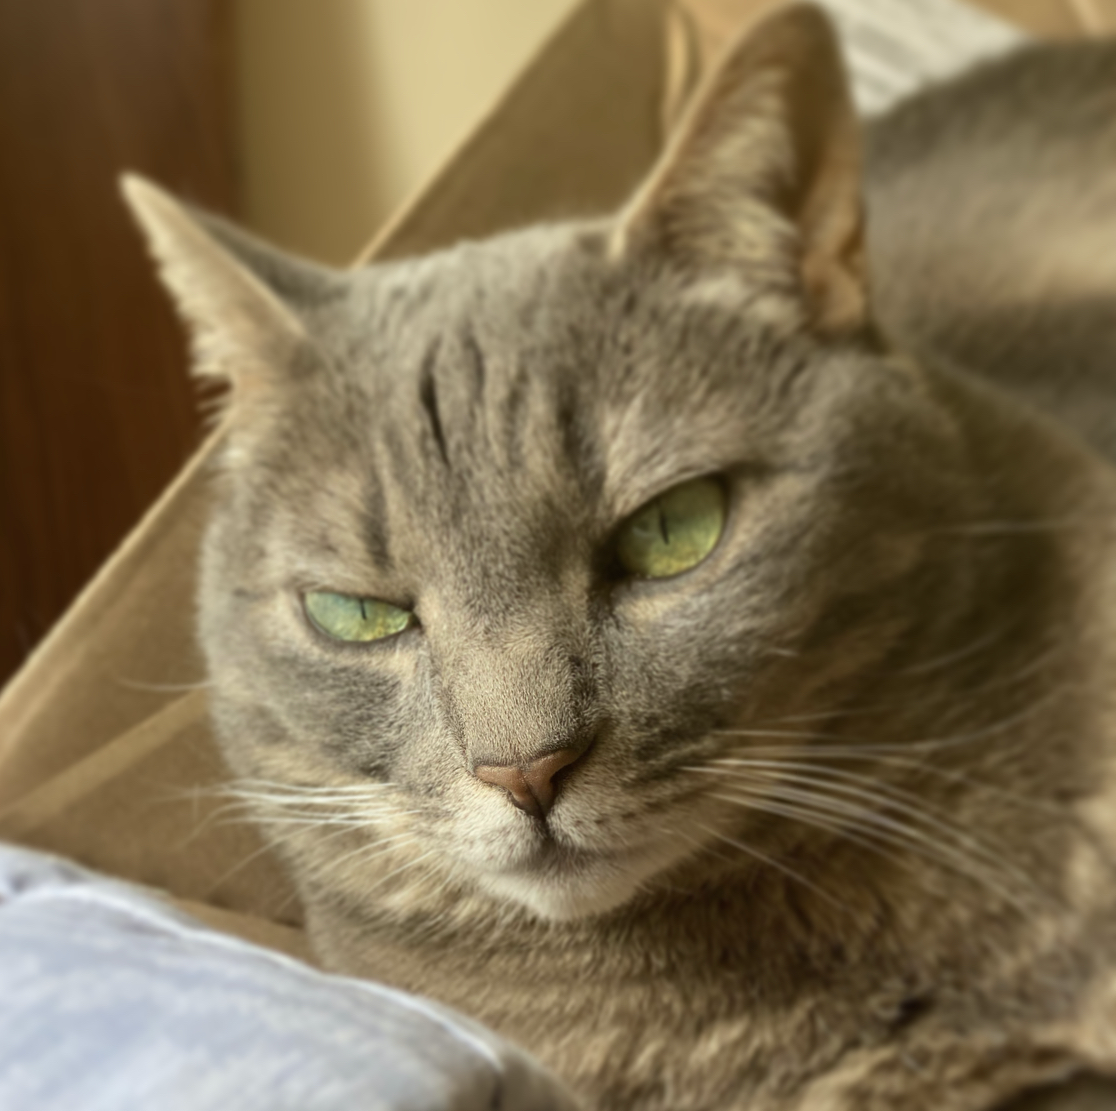 A close-up on the face and ears of a grey cat with green eyes sitting atop a cardboard box.